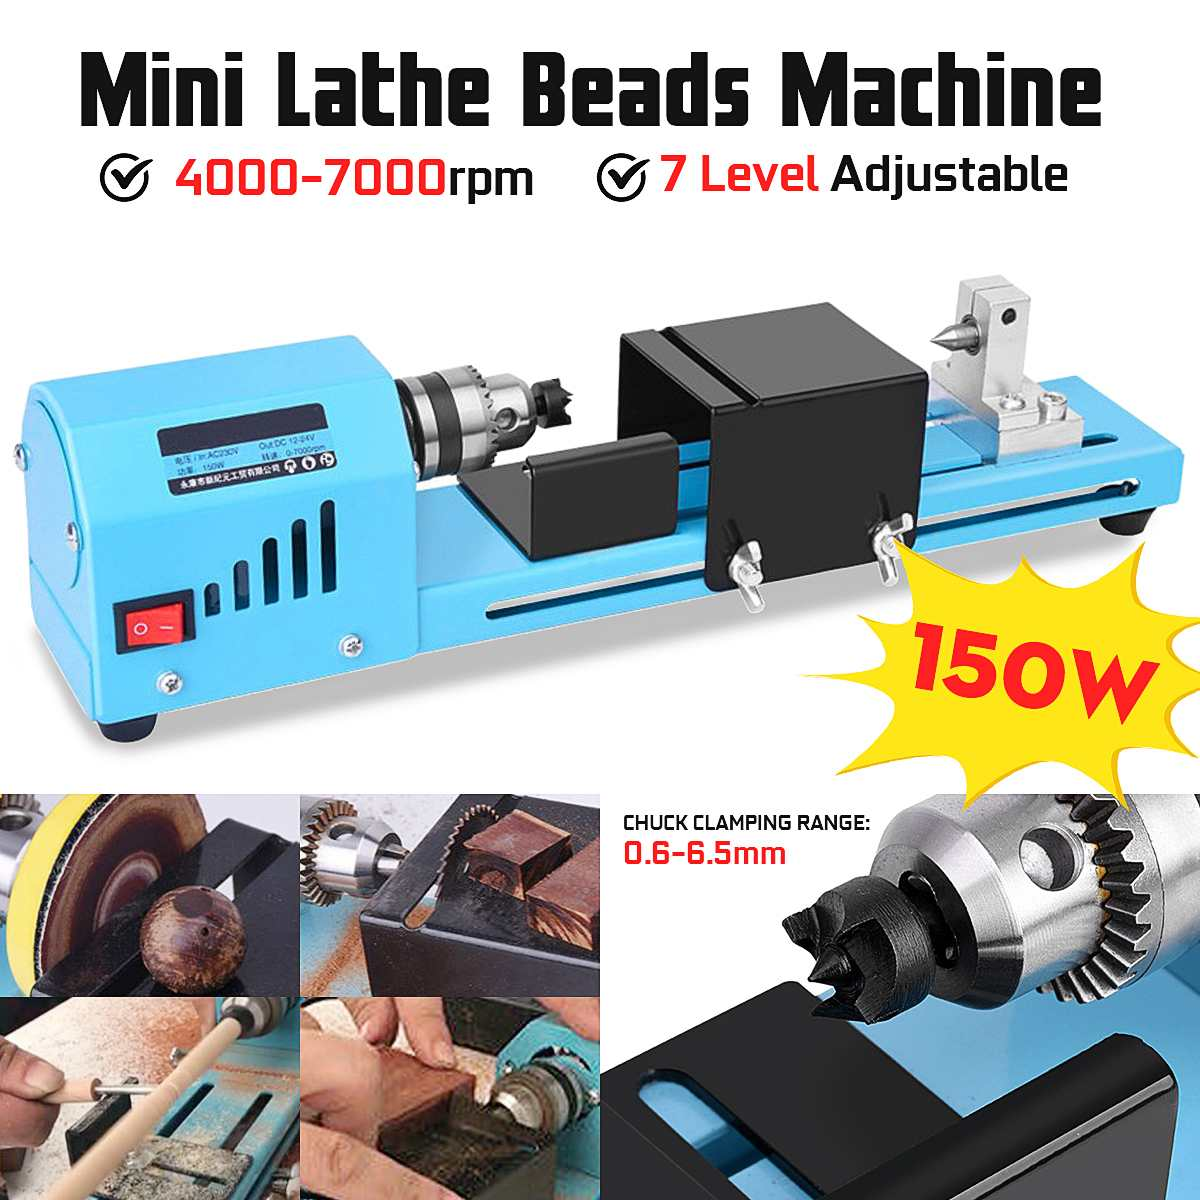 150W Mini Lathe Machine Tool DIY Woodworking Wood lathe Milling machine Grinding Polishing Beads Drill Rotary Tool